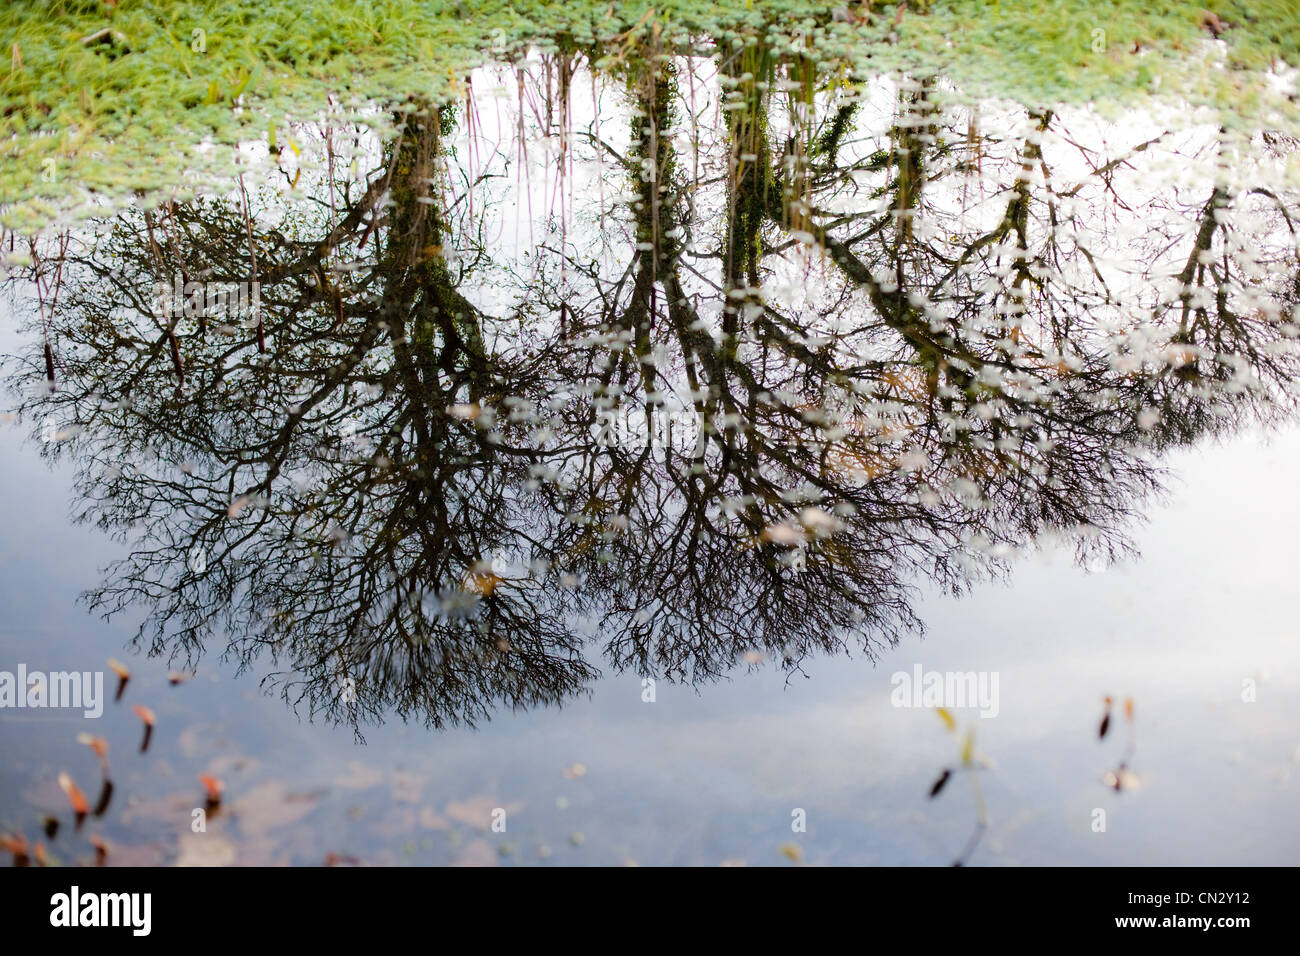 Trees reflected in puddle - Stock Image